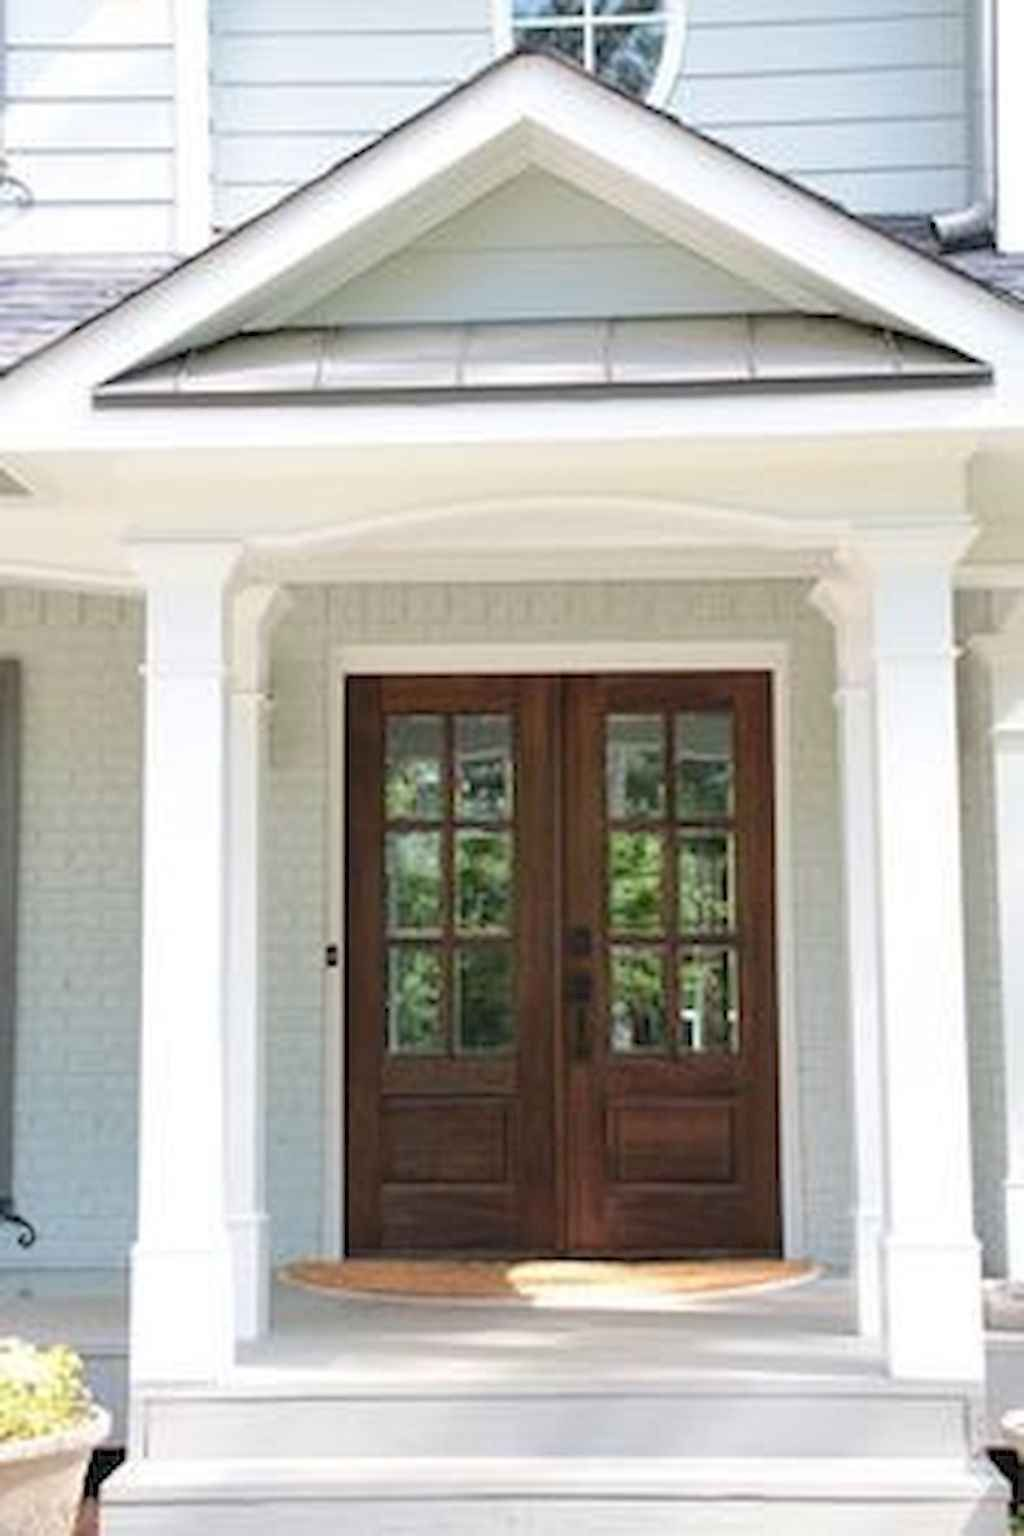 90 Awesome Front Door Farmhouse Entrance Decor Ideas 63 French Doors Exterior Wood French Doors Wood French Doors Exterior